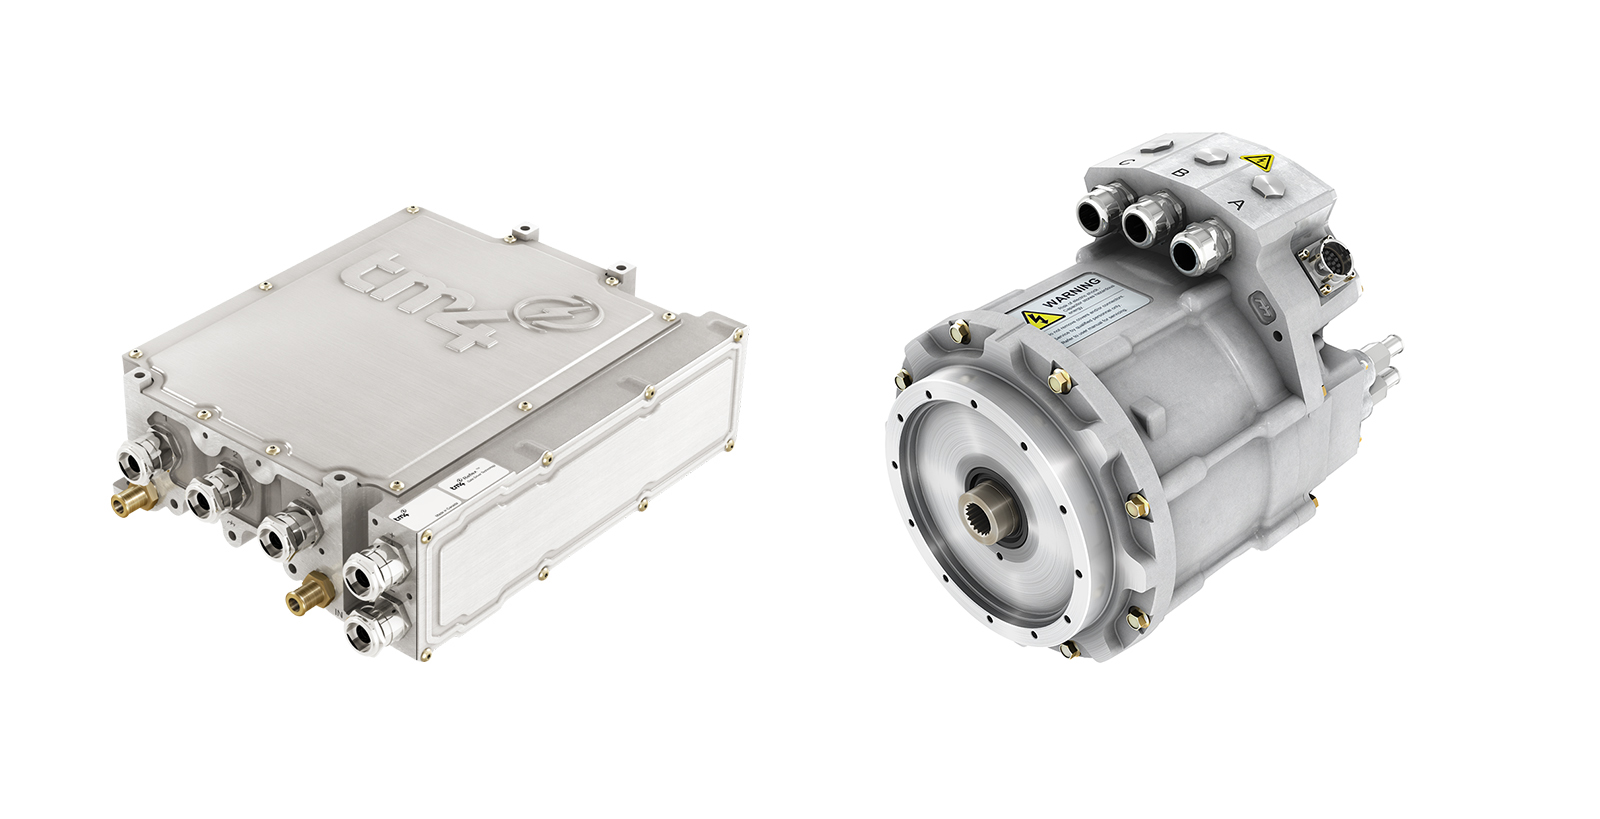 Tm4 Supplies Its Electric Motor And Inverter To Ballard